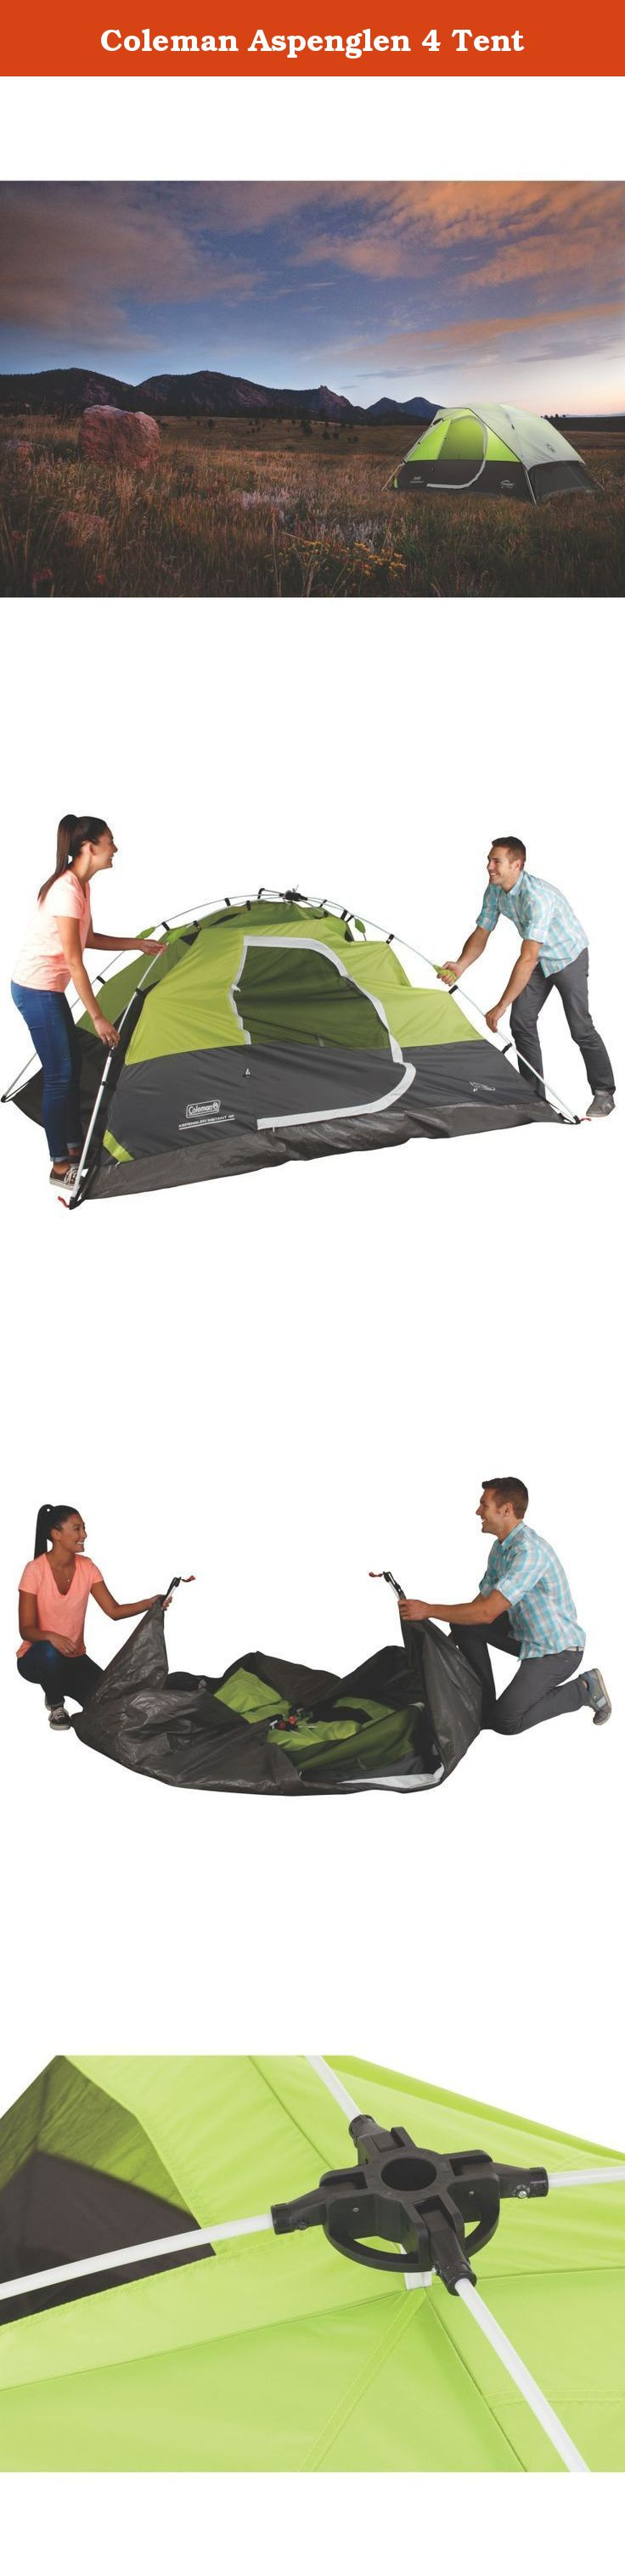 The Coleman Aspenglenn 4 takes the hassle out of setting up your tent! This 4 person freestanding tent has pre-attached collapsible poles that set up in ... & Coleman Aspenglen 4 Tent. The Coleman Aspenglenn 4 takes the ...